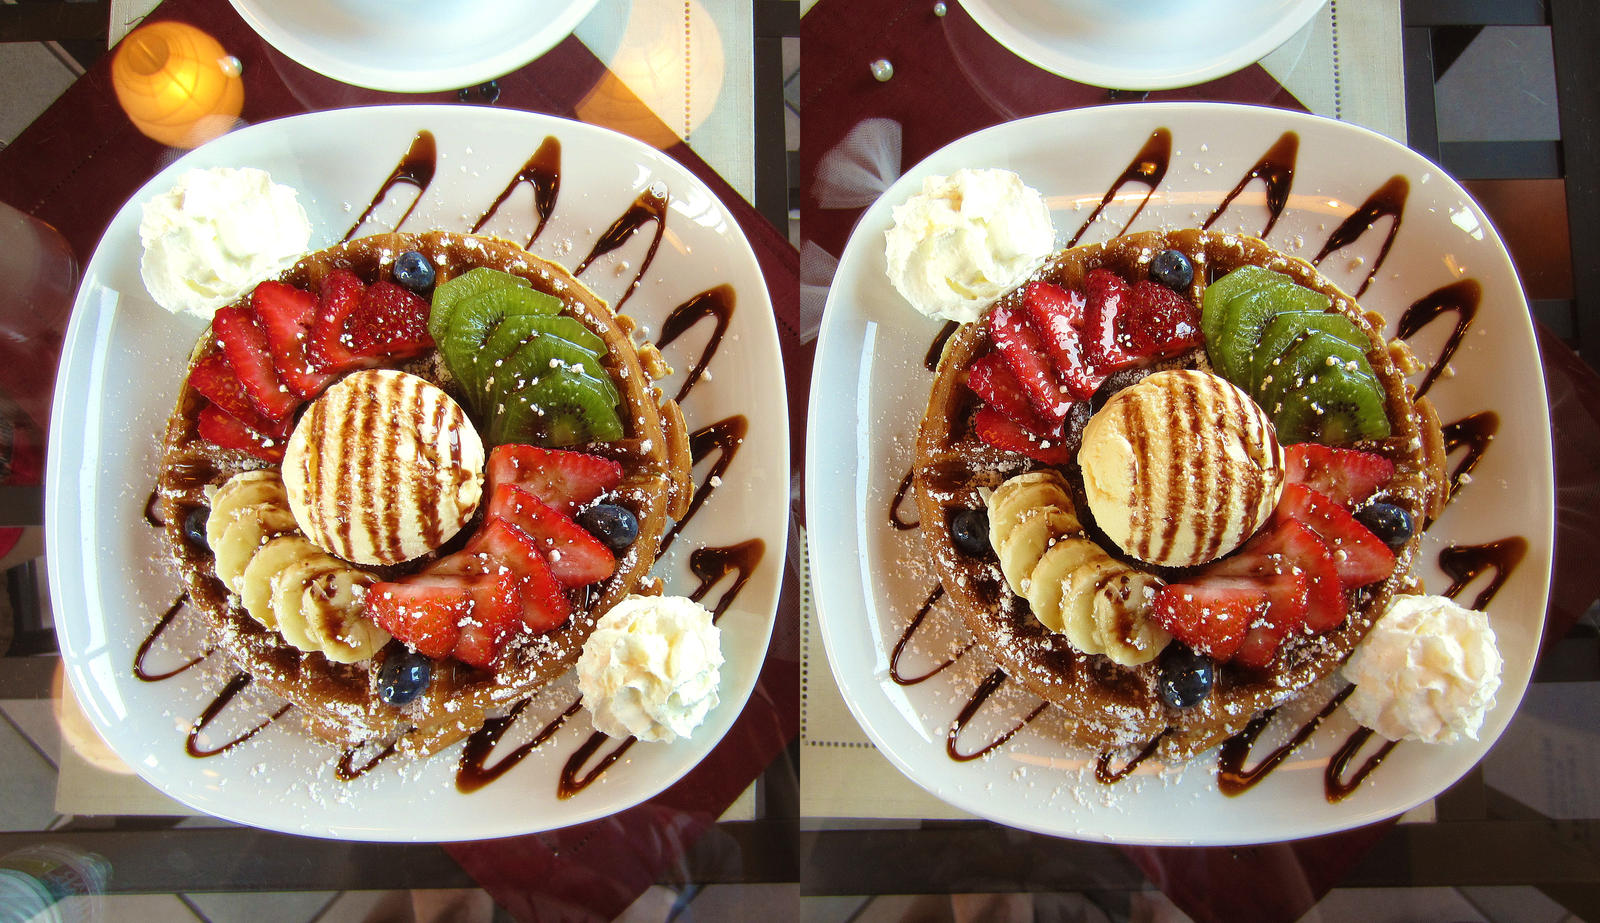 Stereograph - Waffle by alanbecker